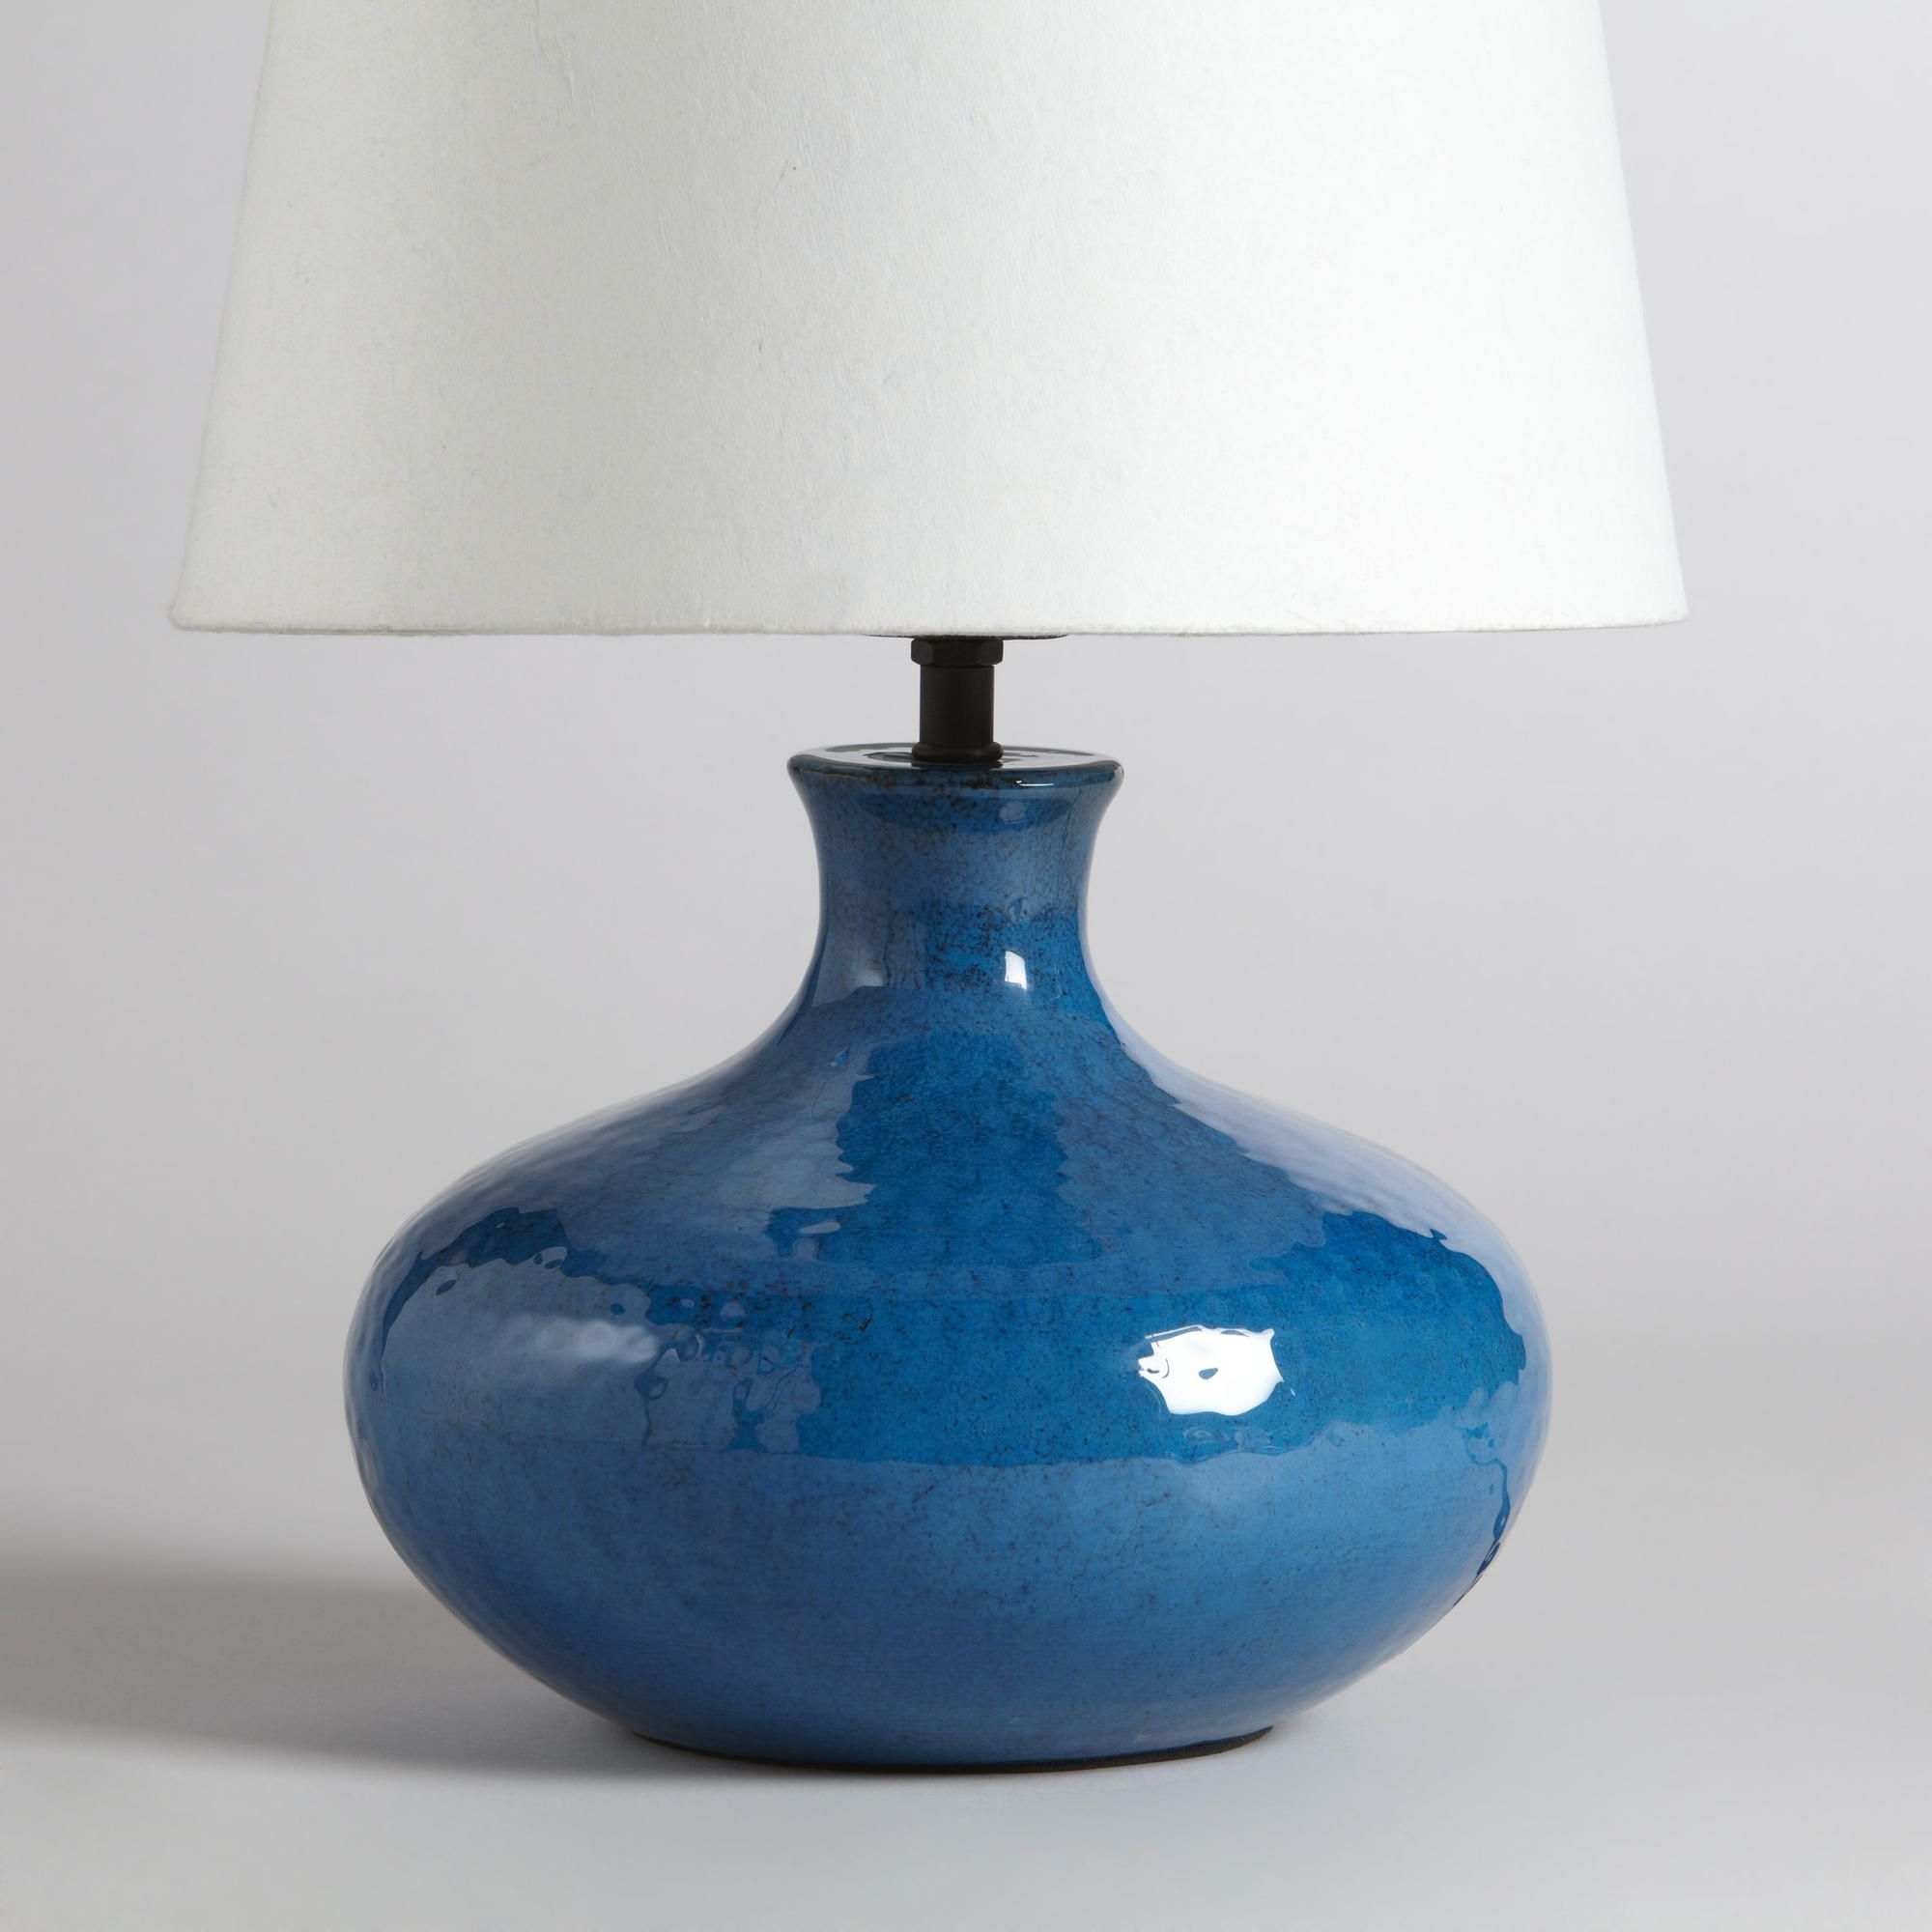 Superior Blue Potted Accent Lamp Base | World Market Design